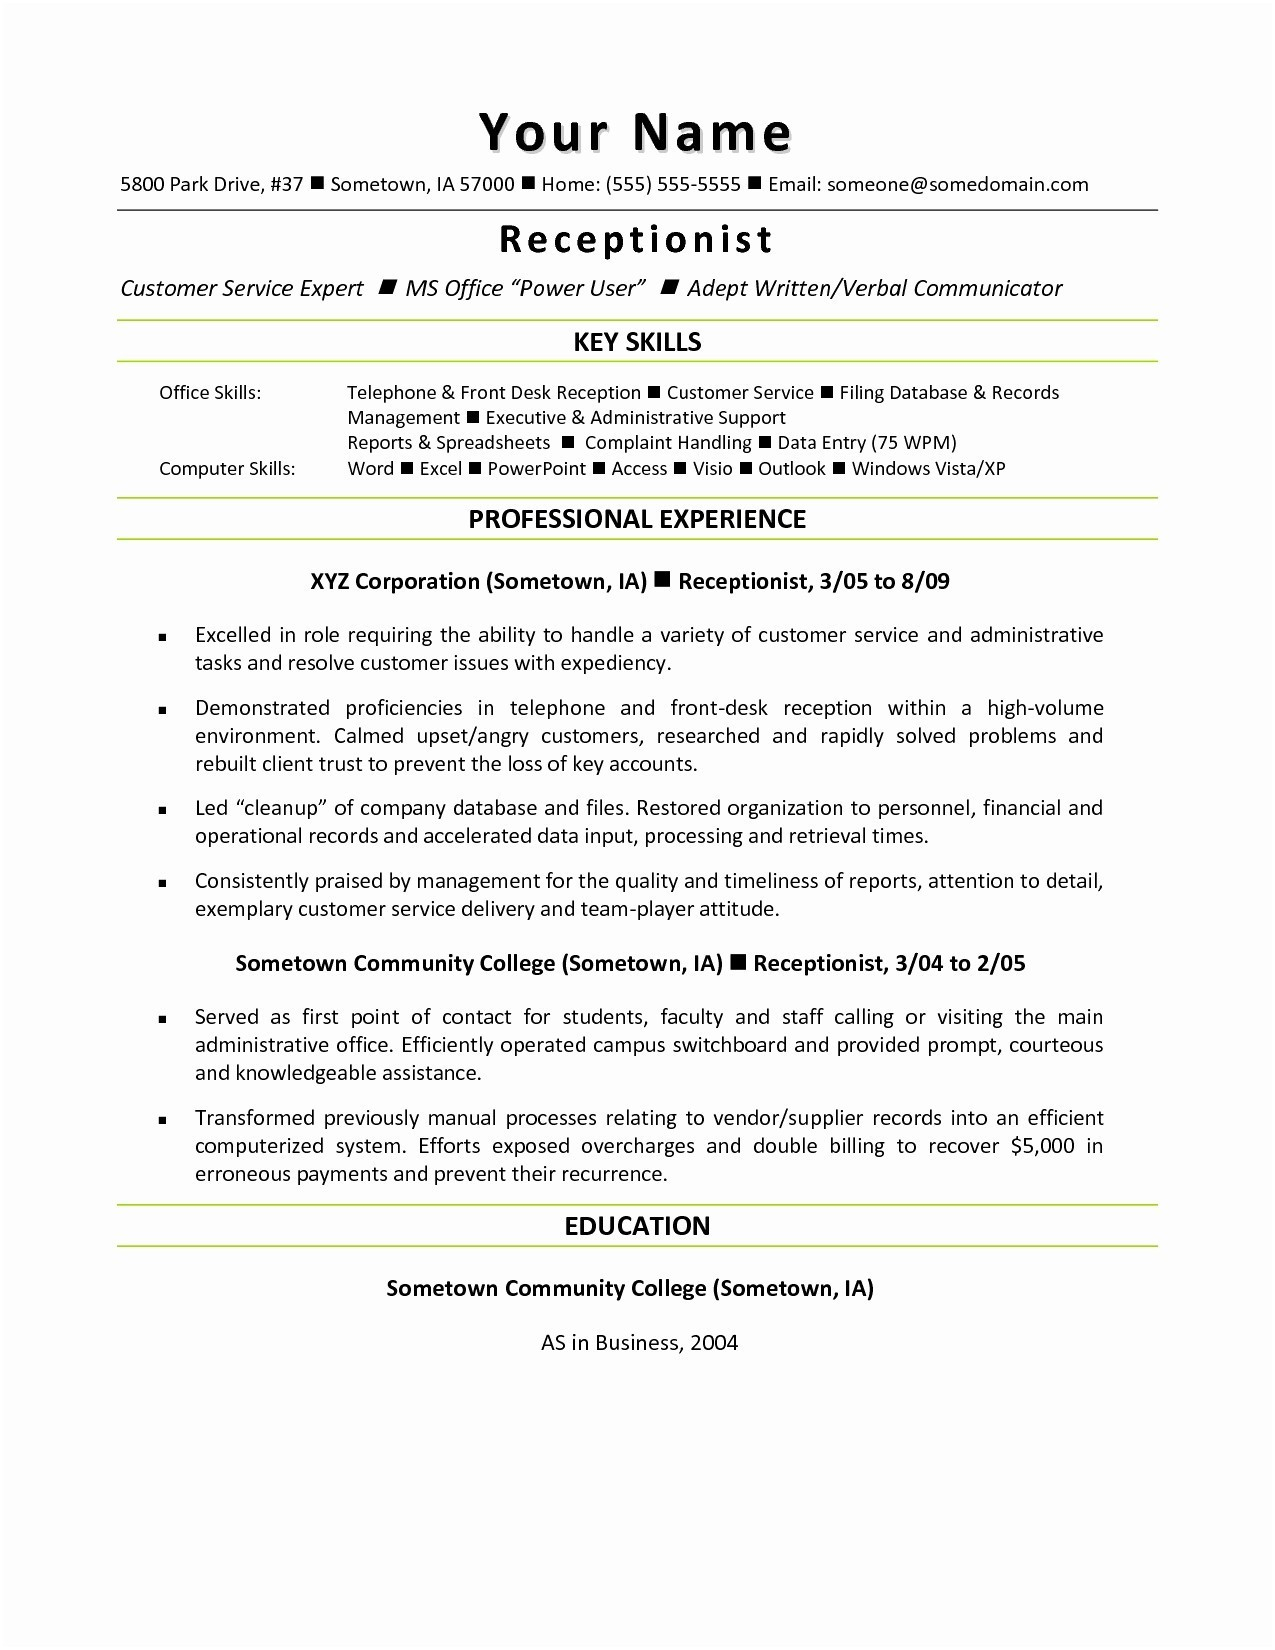 Sample Cover Letter Template Word - Resume Microsoft Word Fresh Resume Mail format Sample Fresh